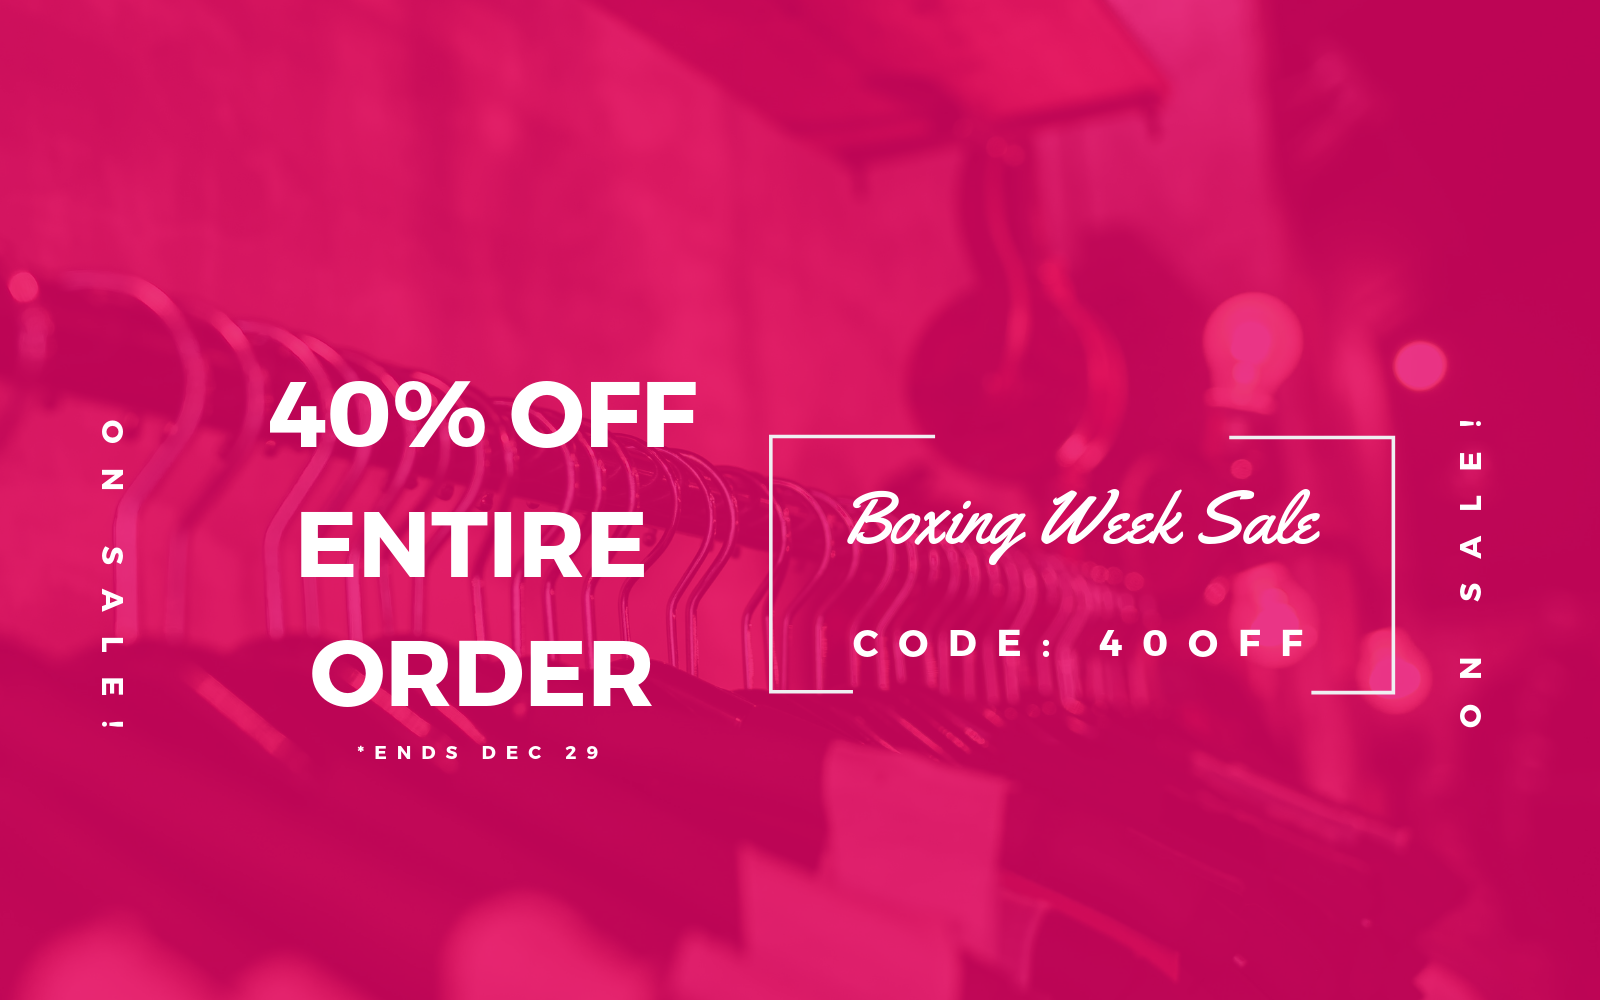 Boxing Week Sale—Our Biggest Sale Ever